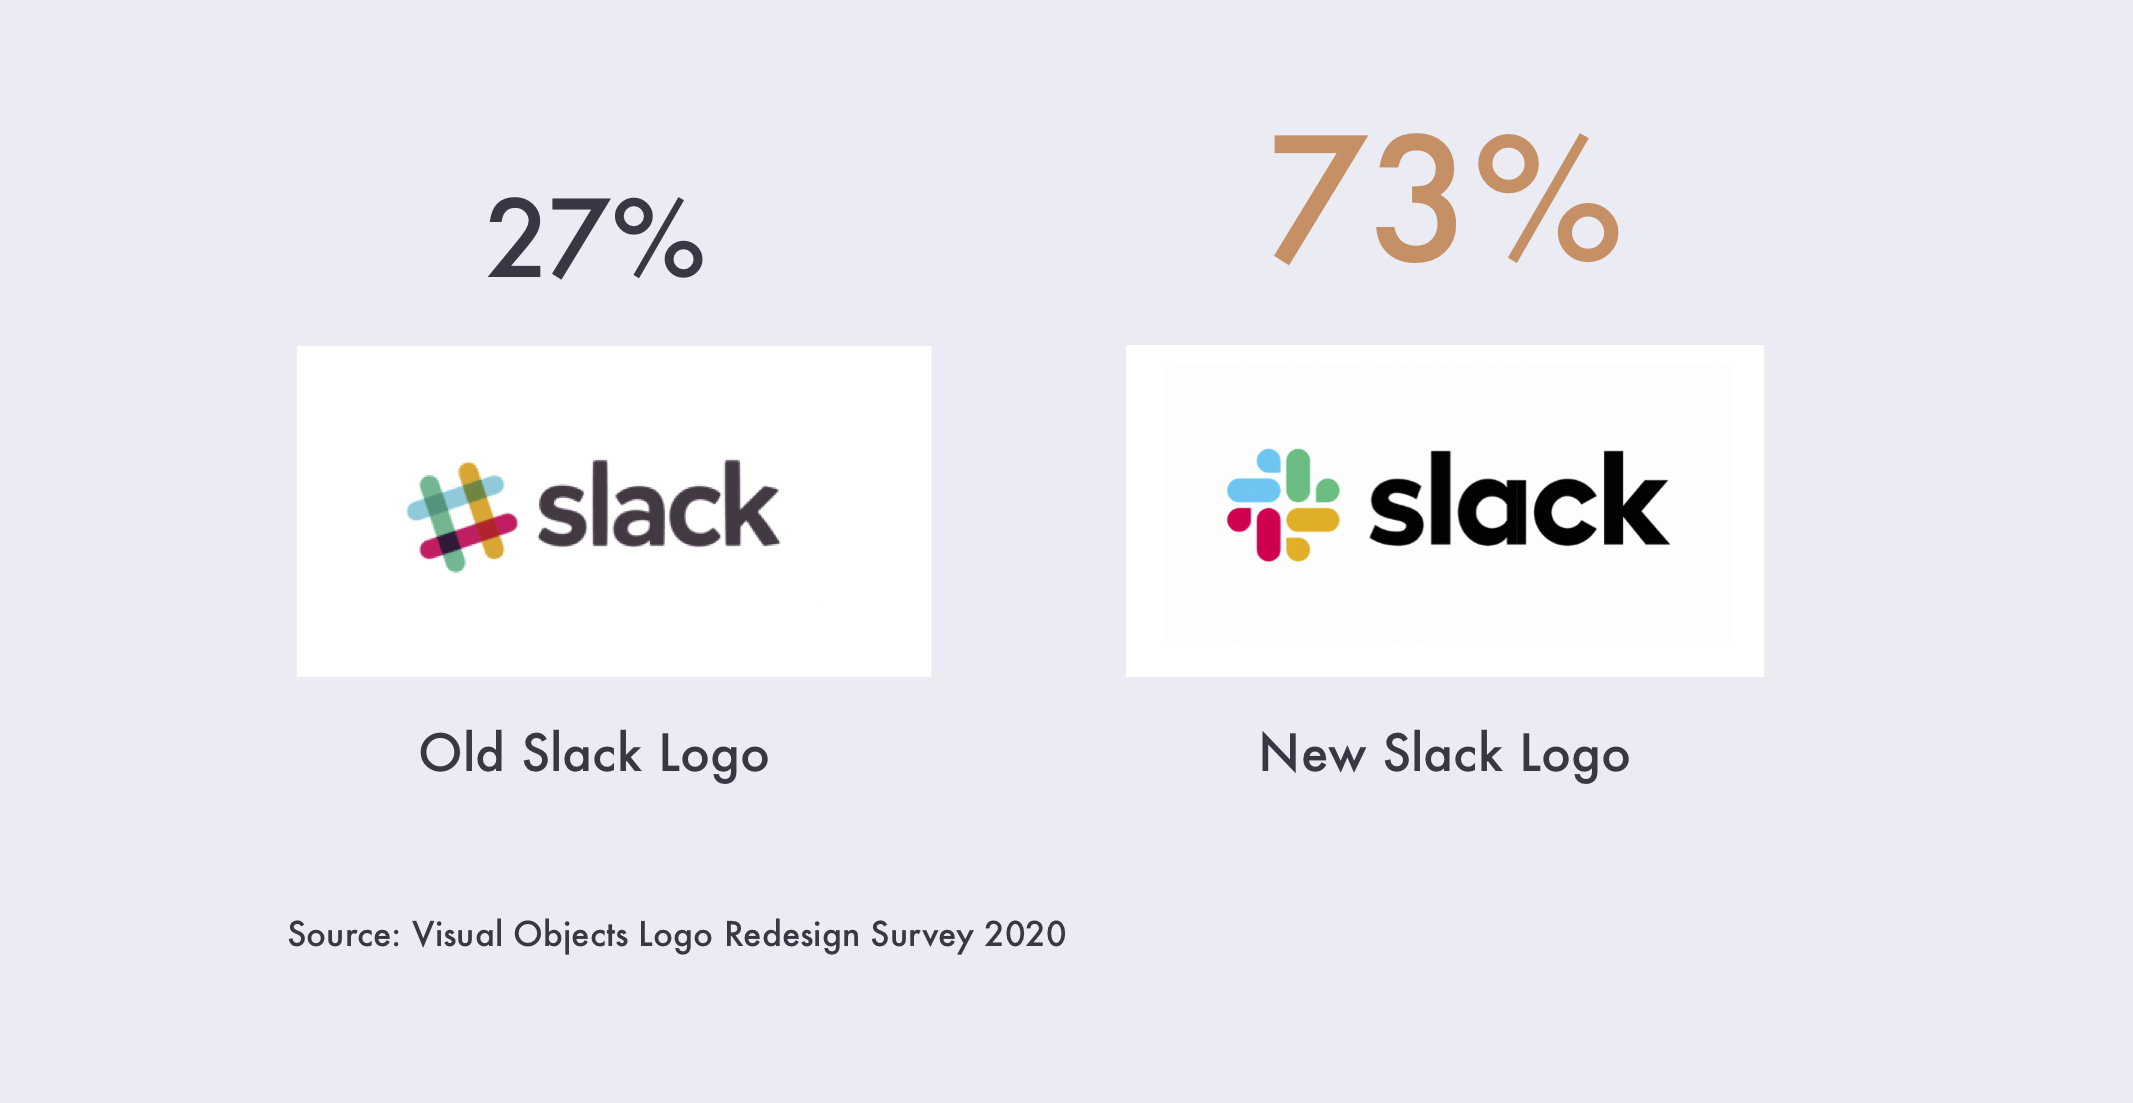 73% of people prefer the redesigned slack logo